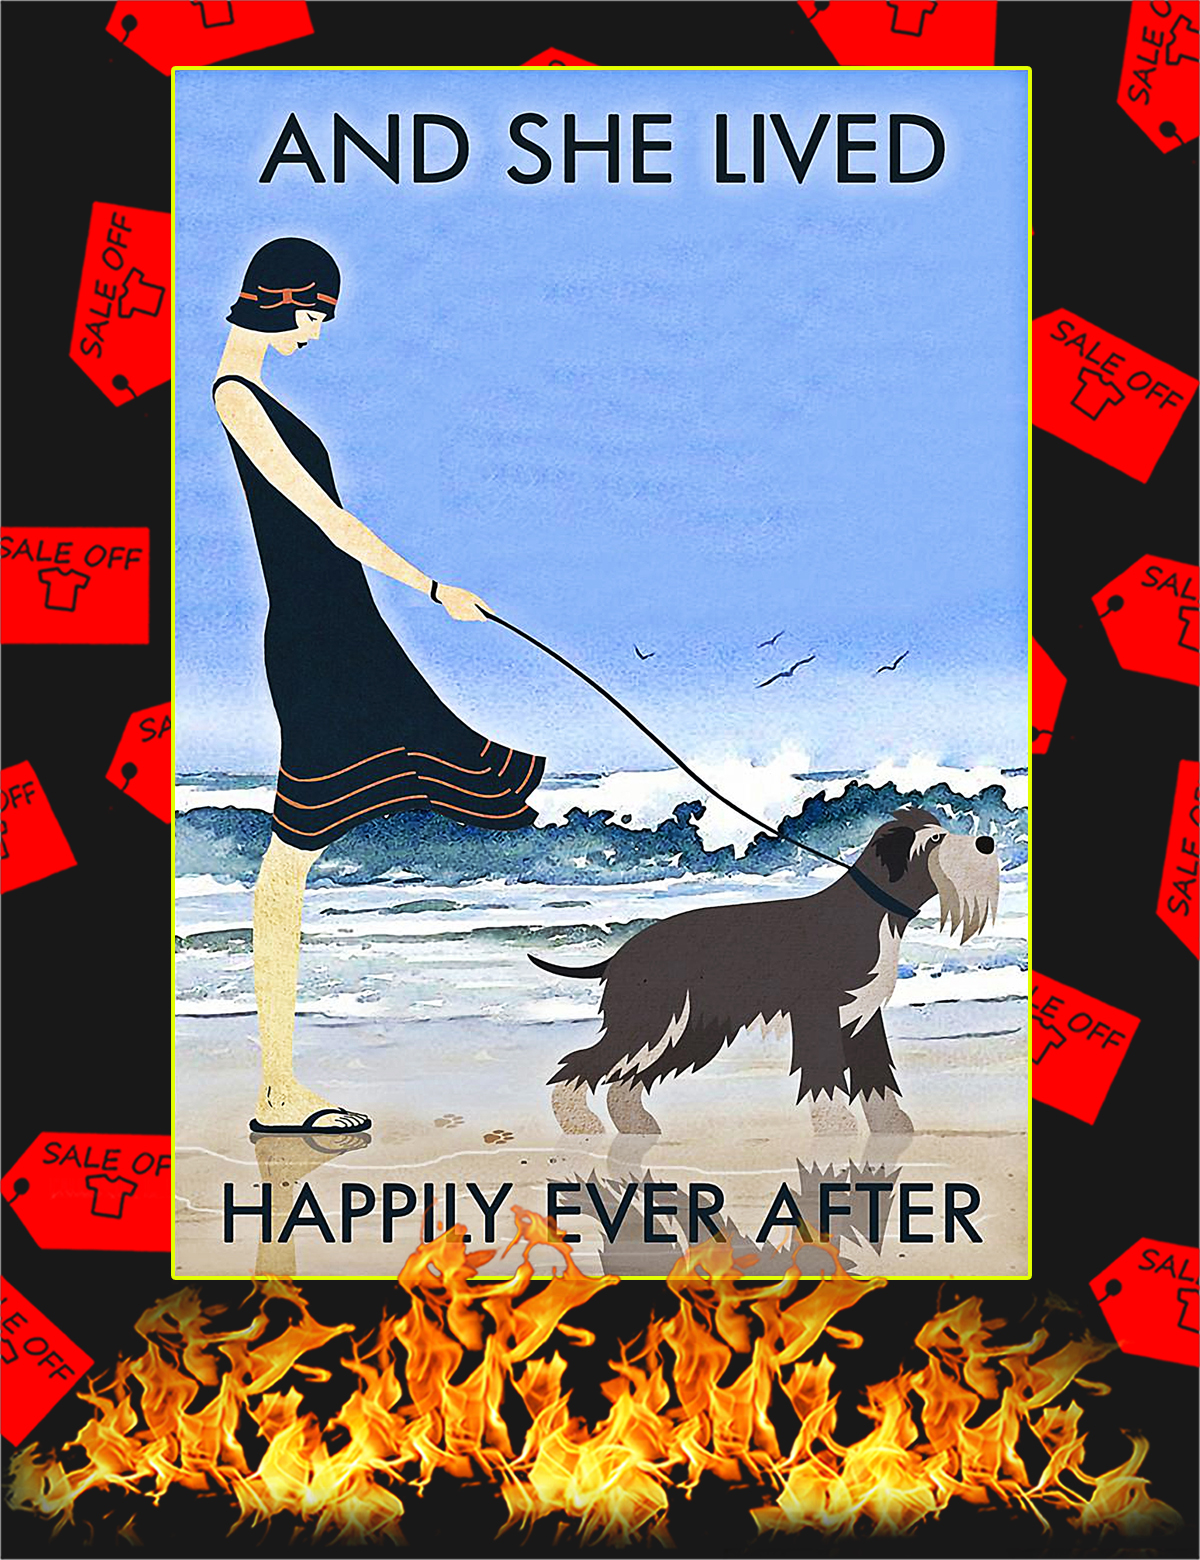 Beach and dog miniature schnauzer and she lived happily ever after poster - A4